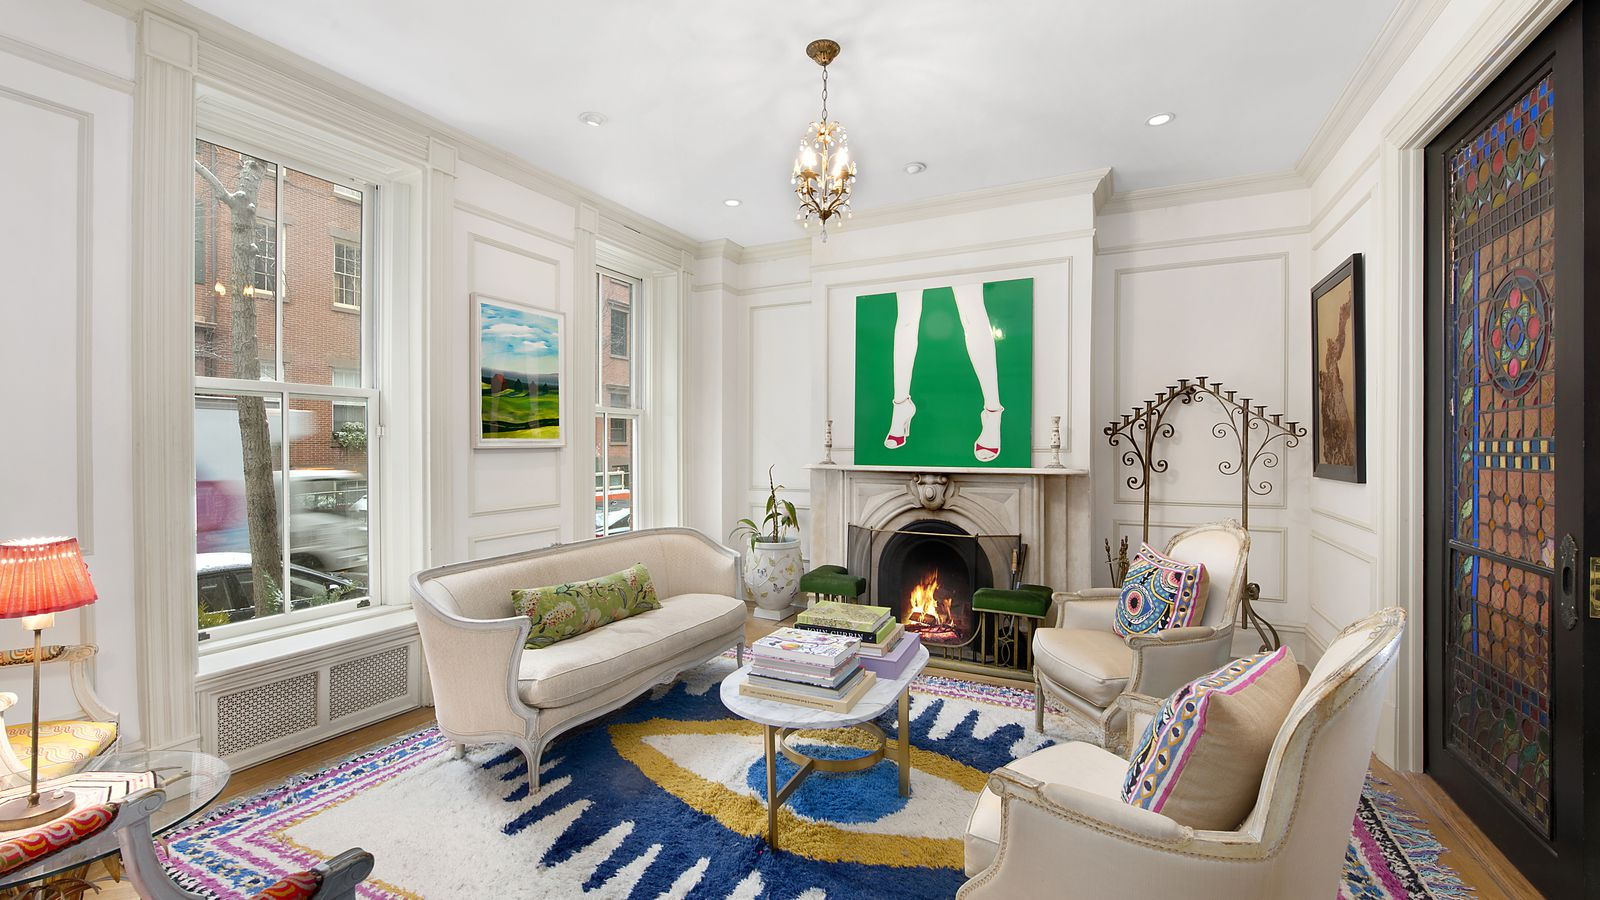 Greenwich village federal style townhouse dating to 1829 for Townhouse for rent nyc